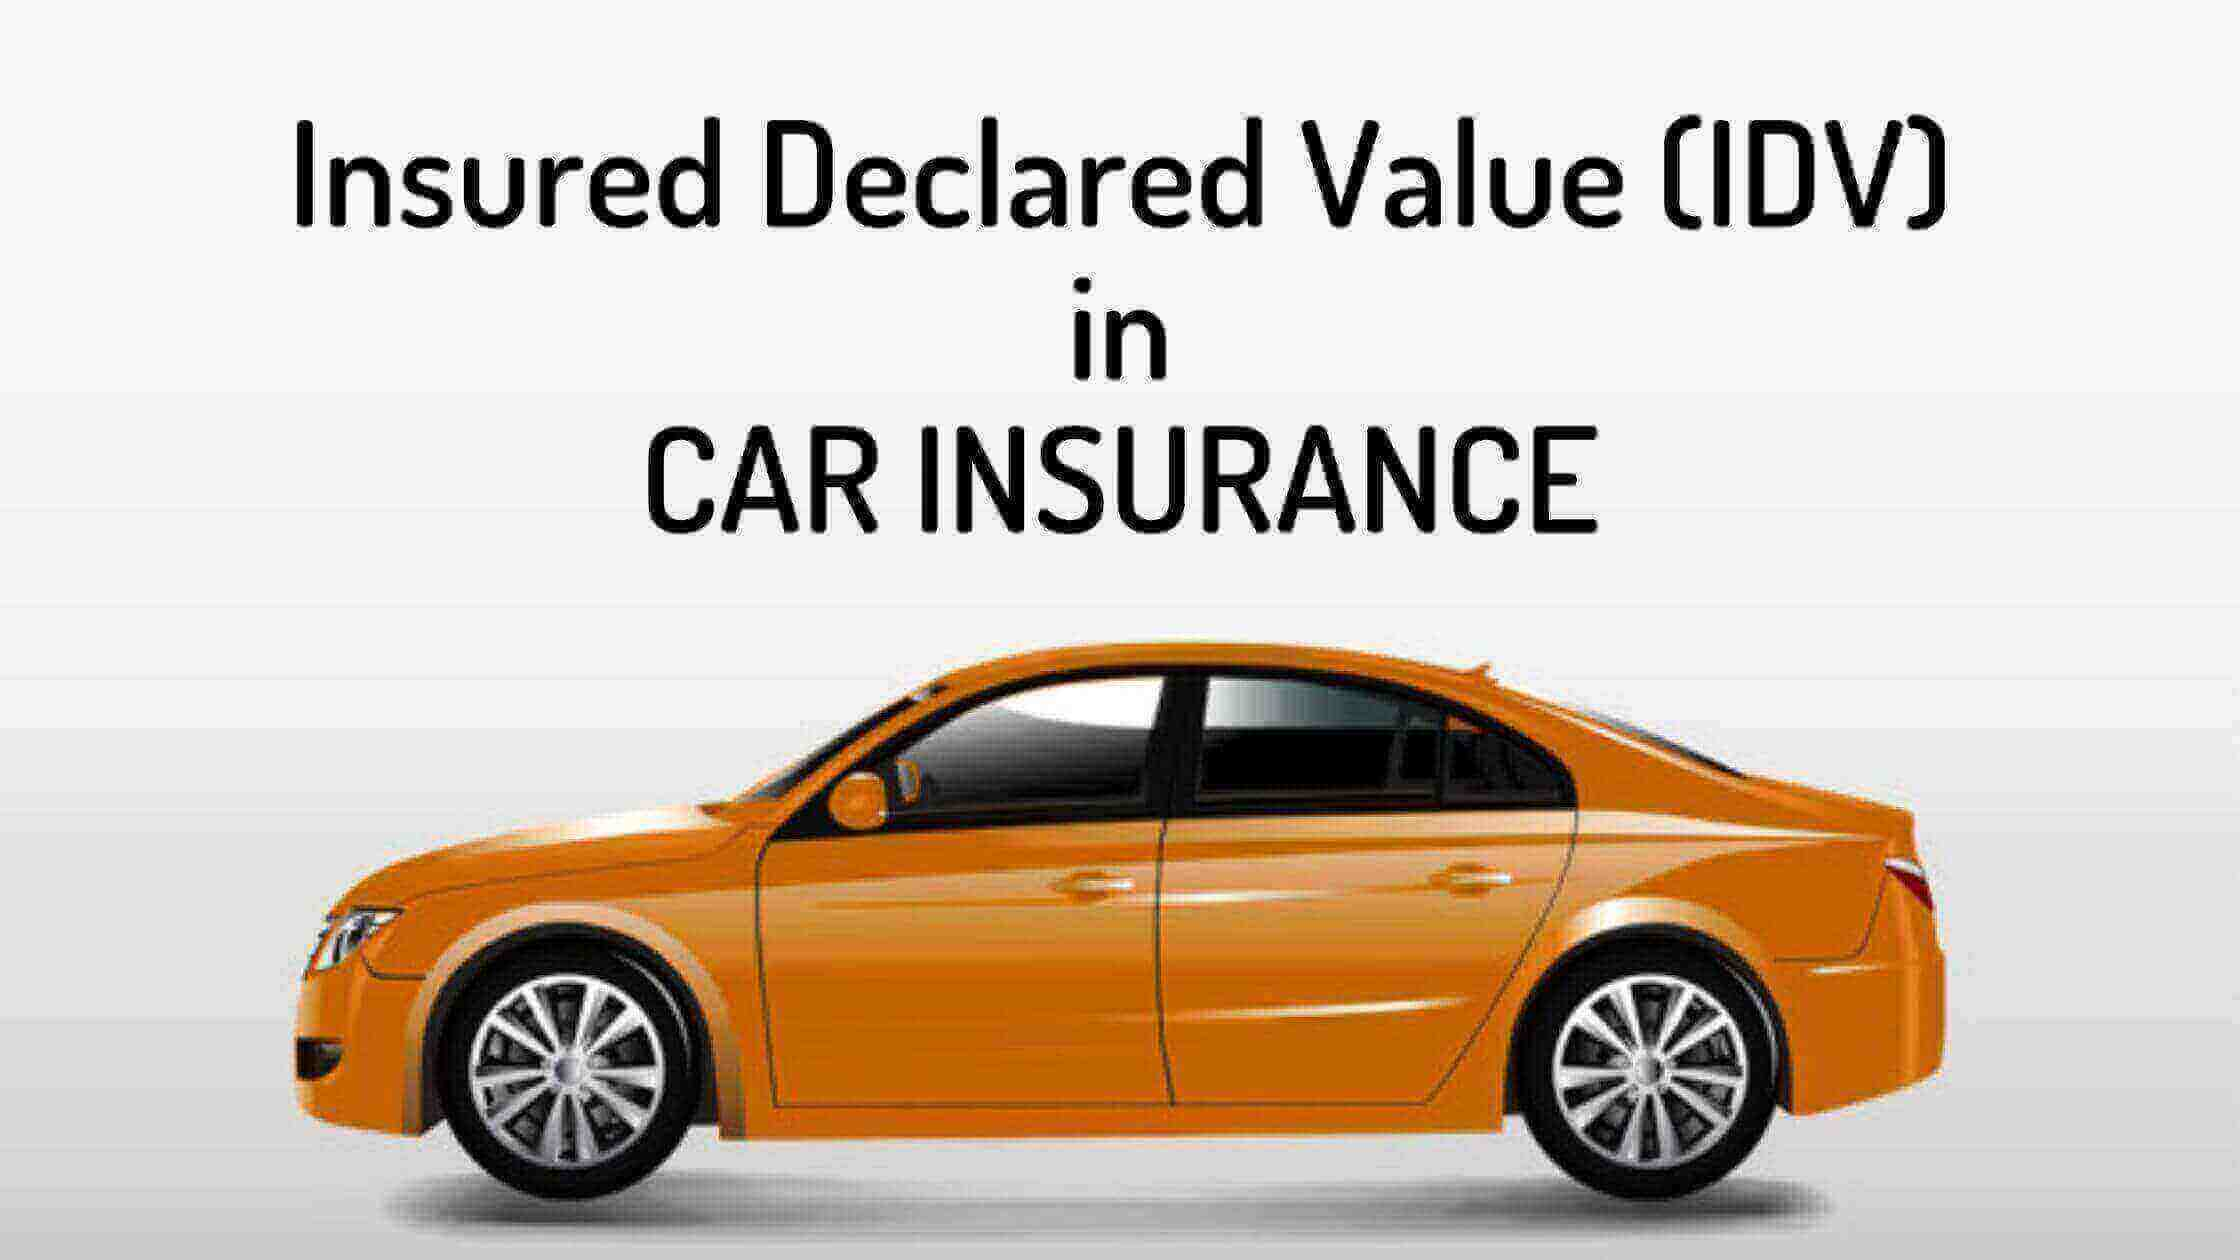 All You Need to Know About Insured Declared Value (IDV) in Car Insurance